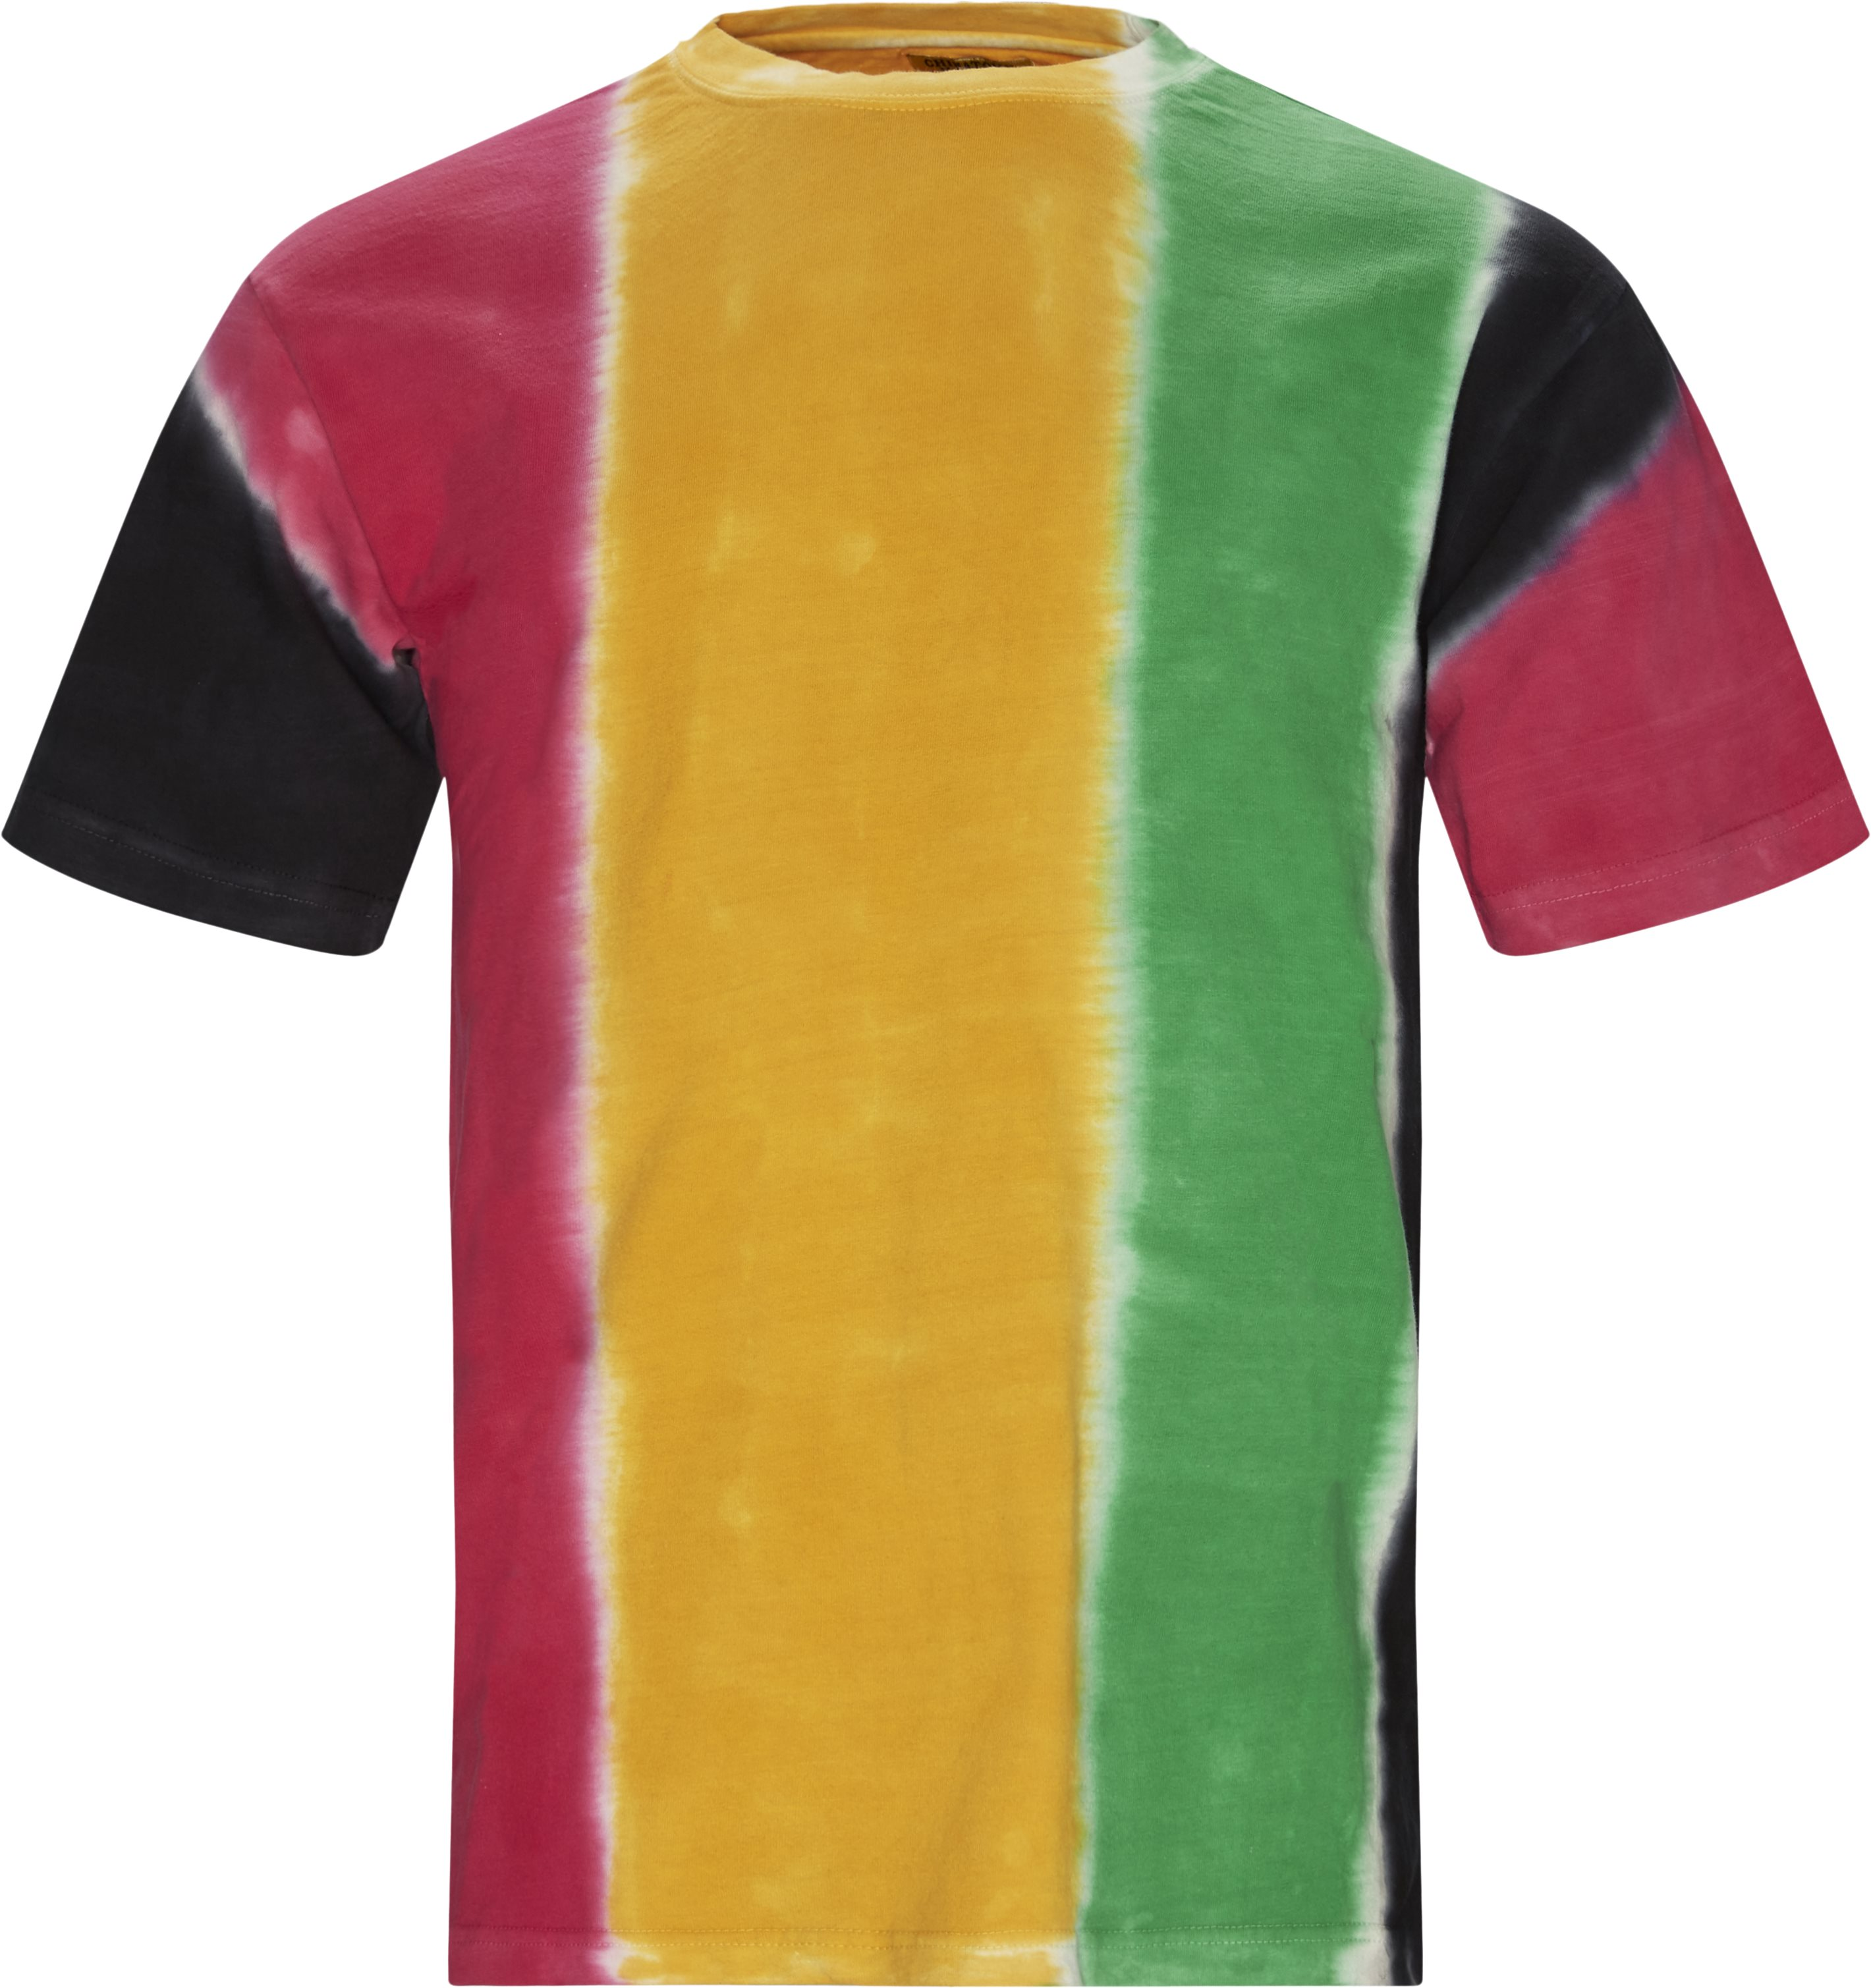 All Over Print Tee - T-shirts - Regular fit - Multi